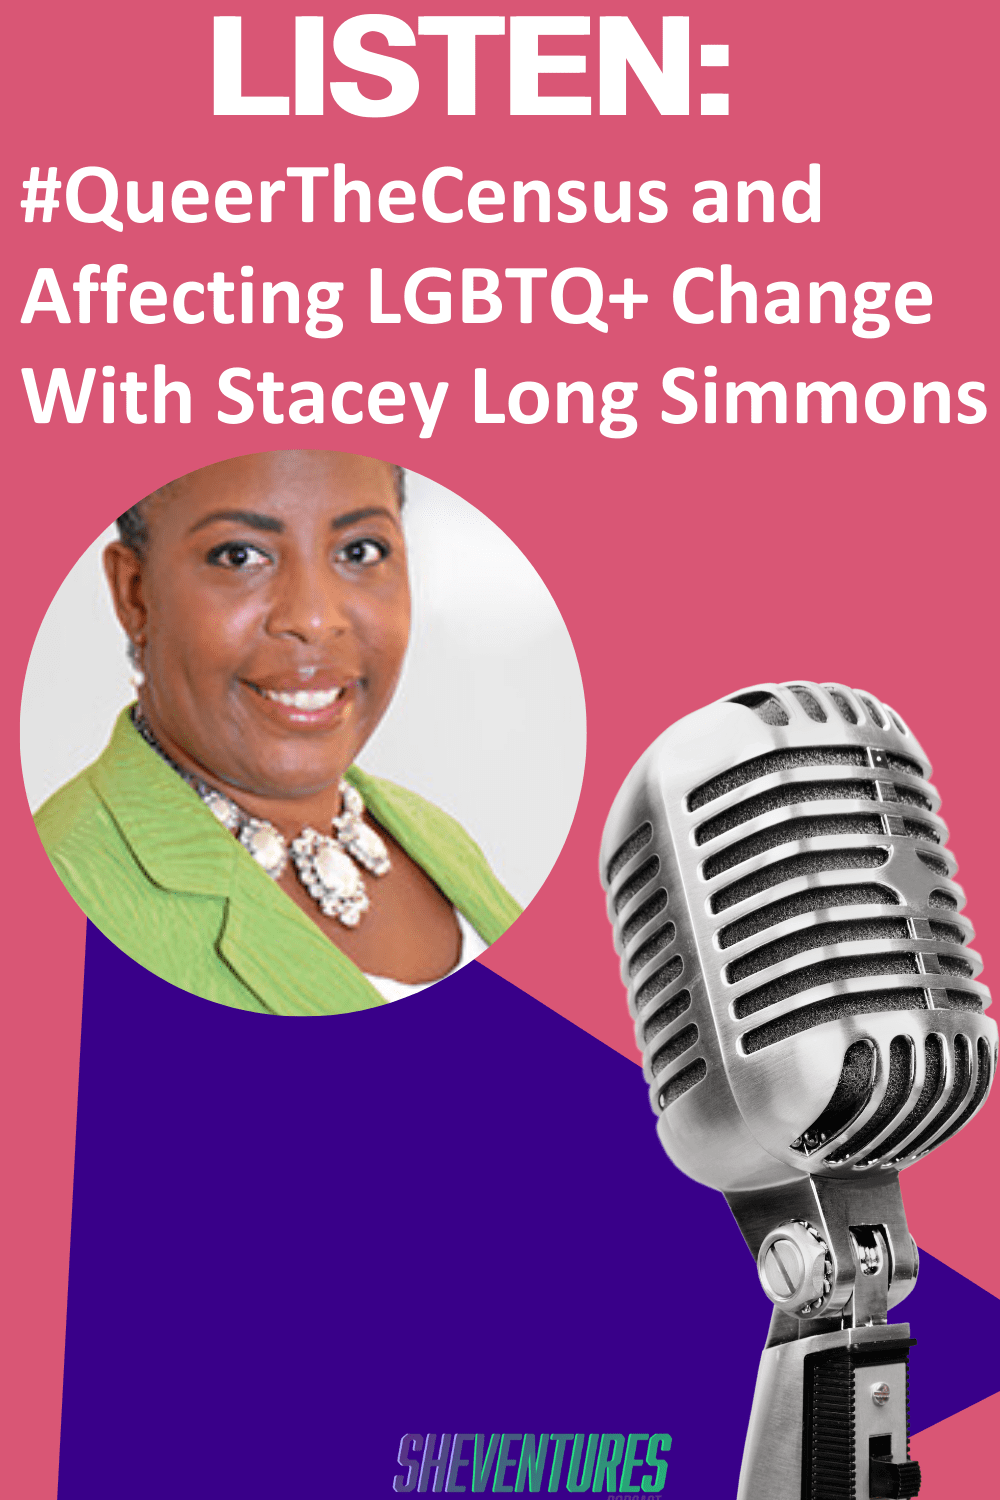 Change With Stacey Long Simmons